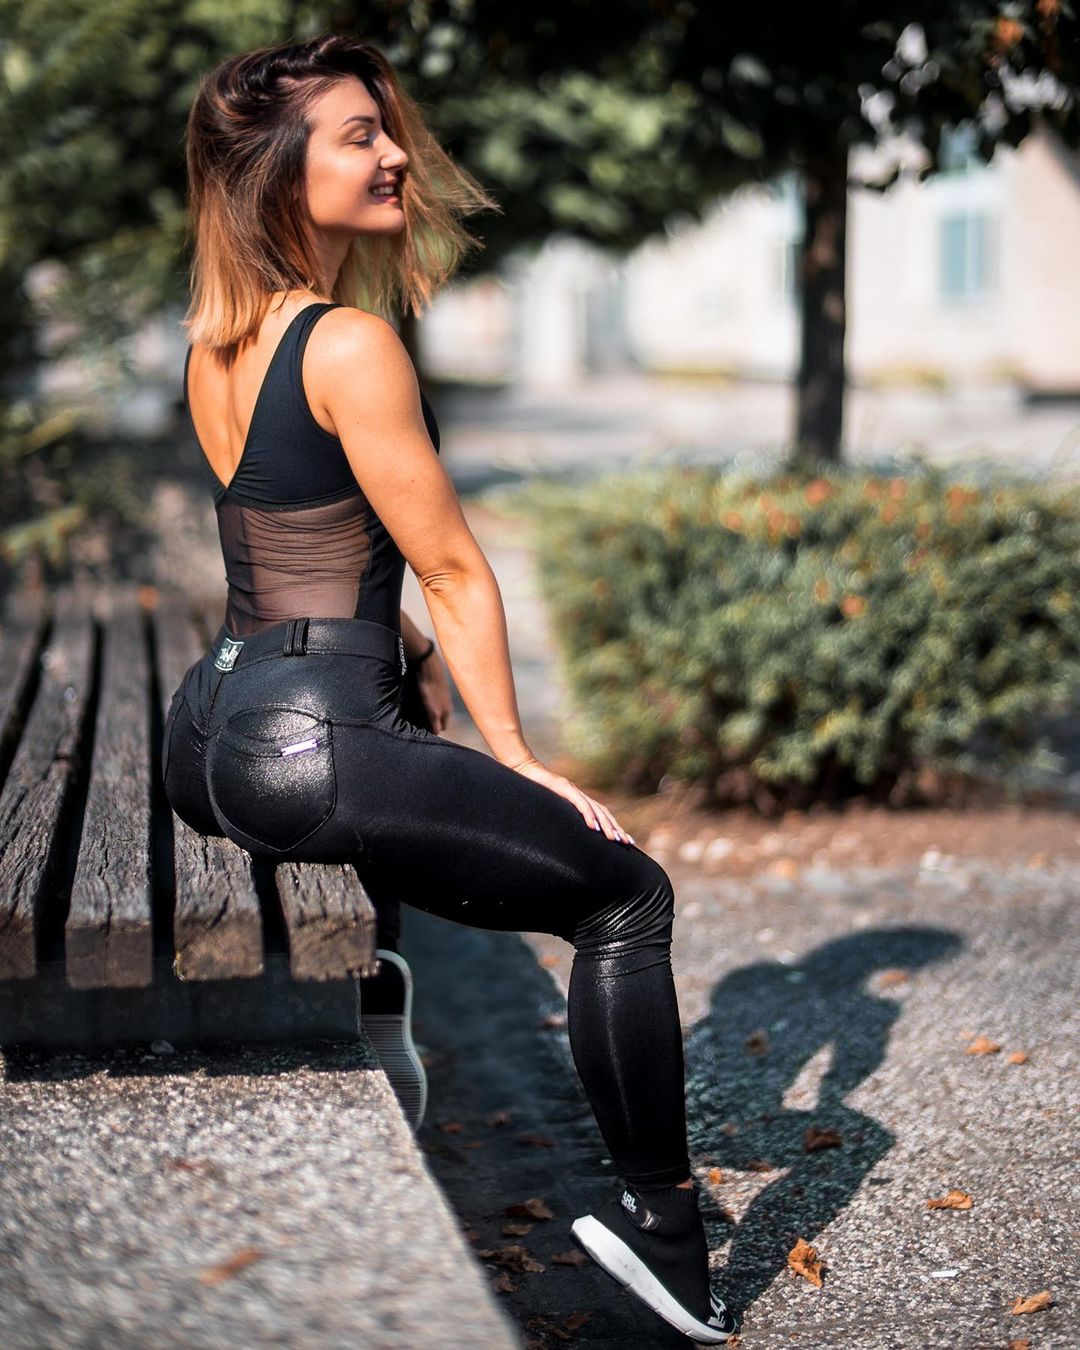 Valerija-Slapnik-Wallpapers-Insta-Fit-Bio-11